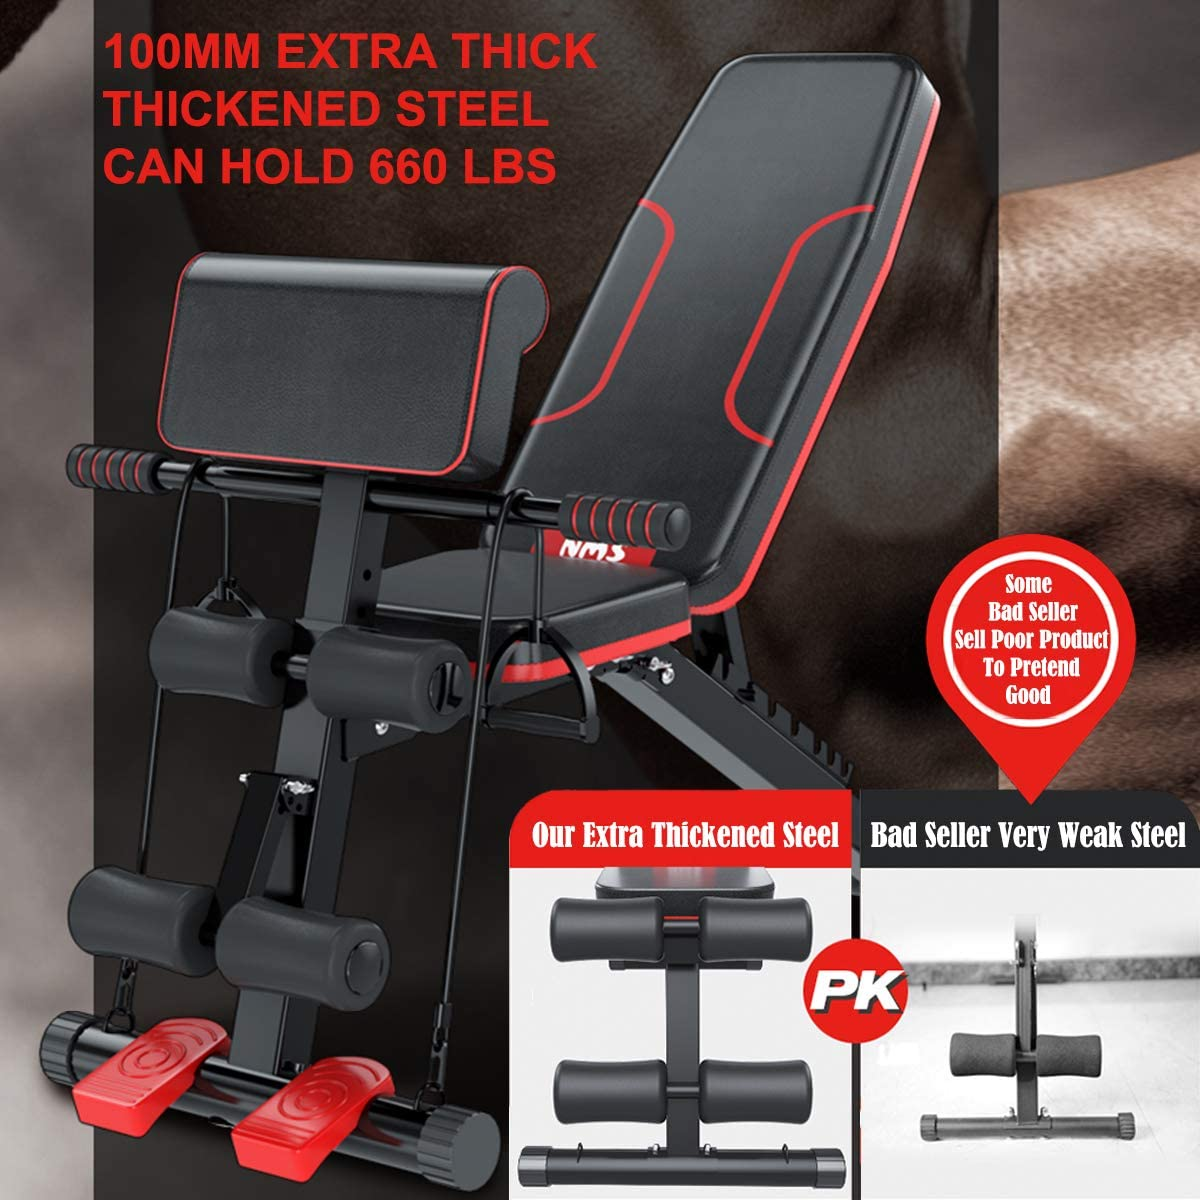 with Fast Folding,For Home Gym Full All-in-One Body Workout Weight bench,Flat//Incline//Decline Bench Multi-Functional Adjustable Strength Training Bench Preacher Curl Bench,Roman Chair,Sit-up Board